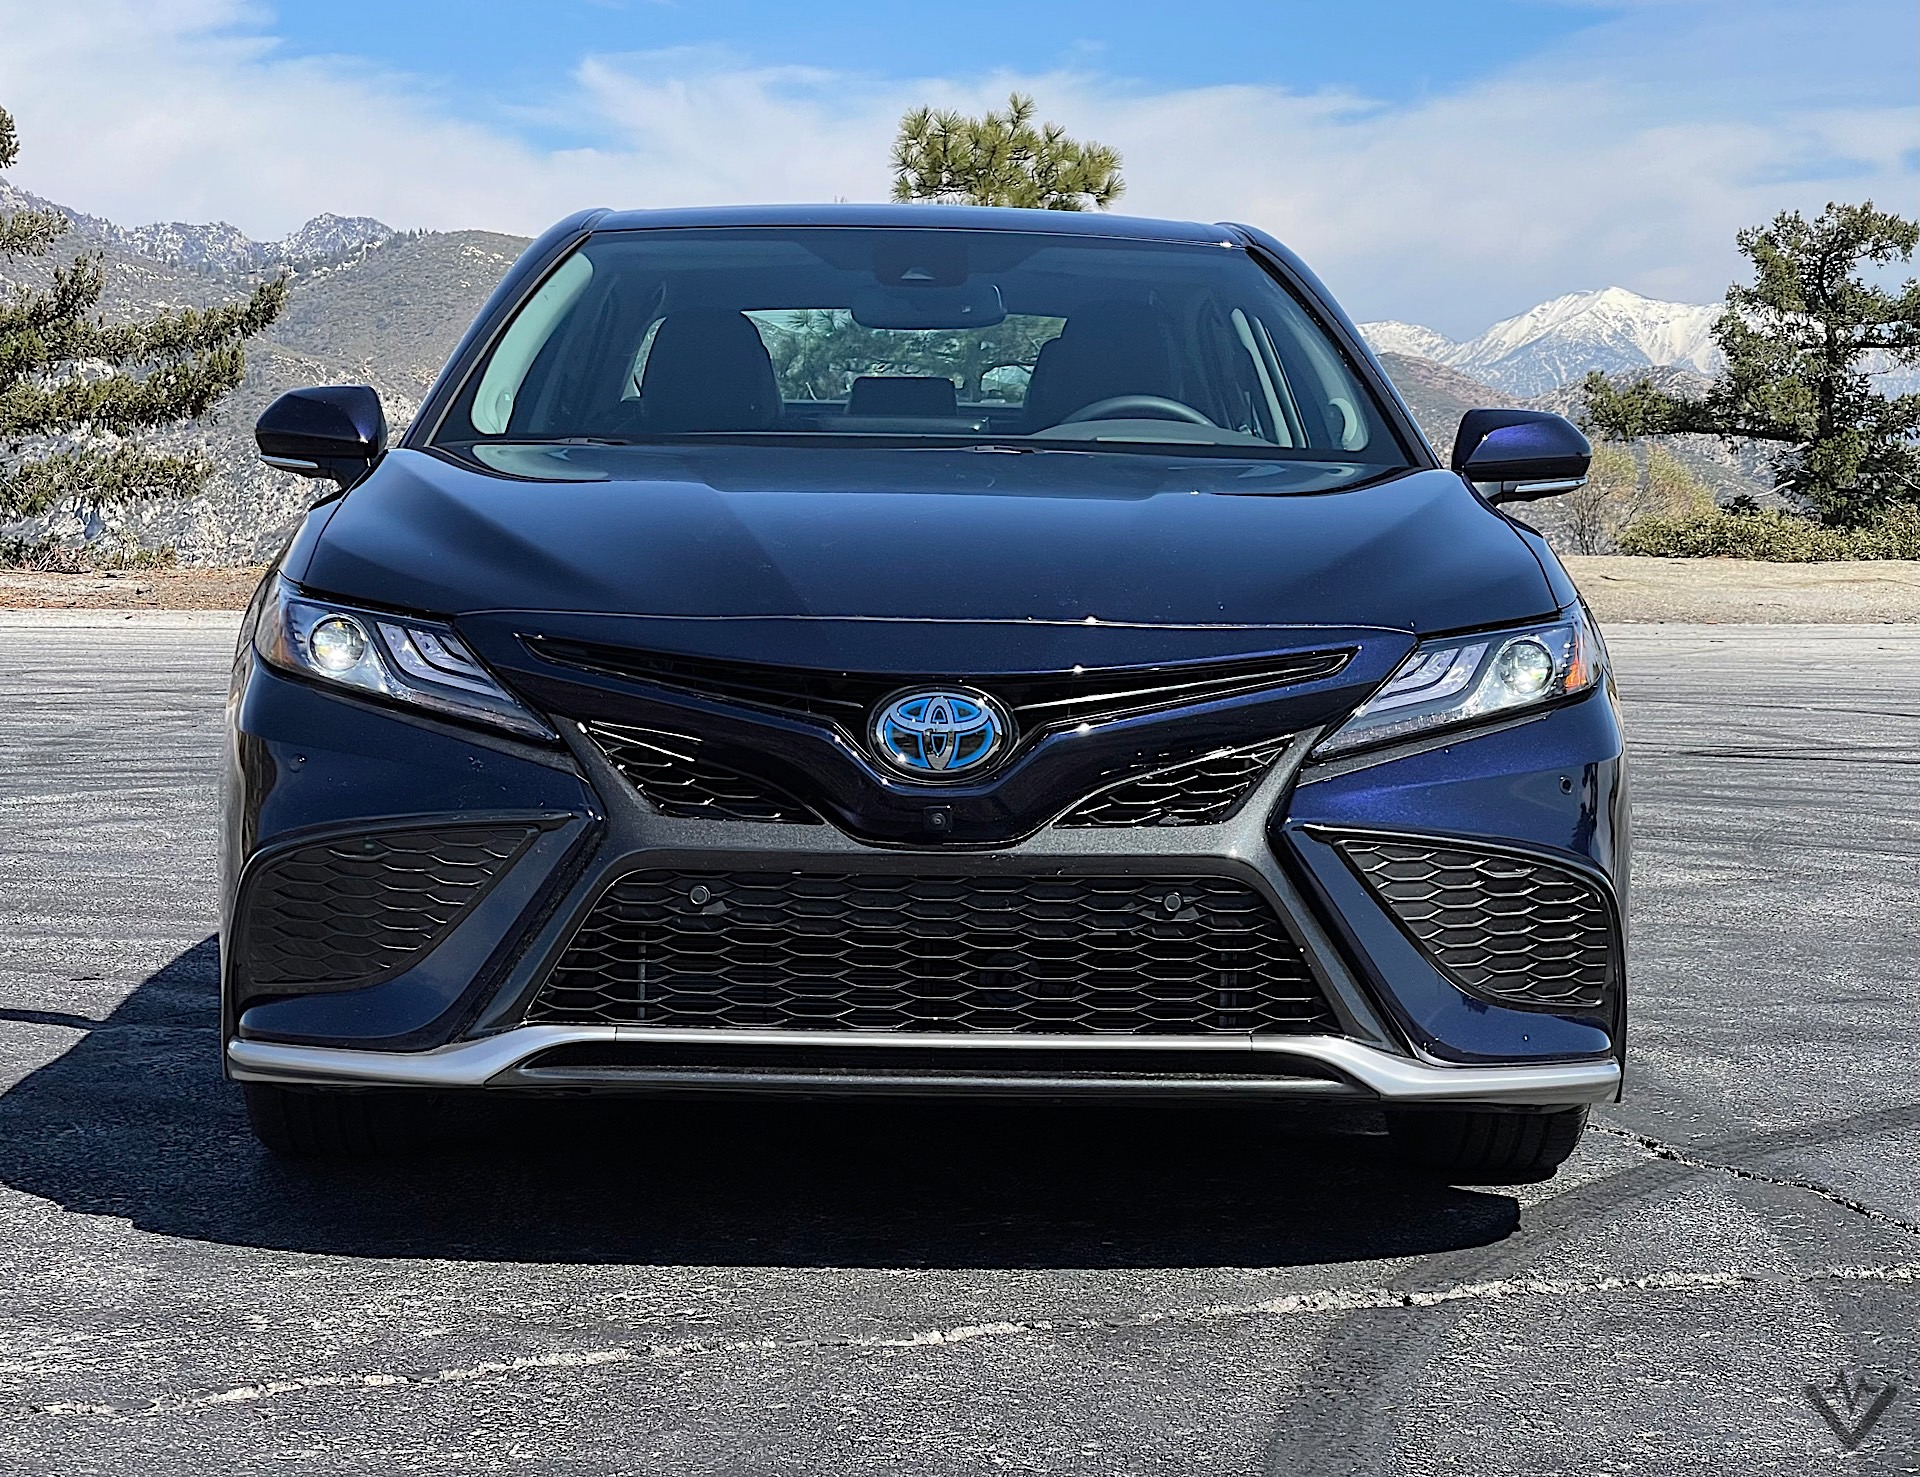 2021 Toyota Camry Hybrid front 02 1